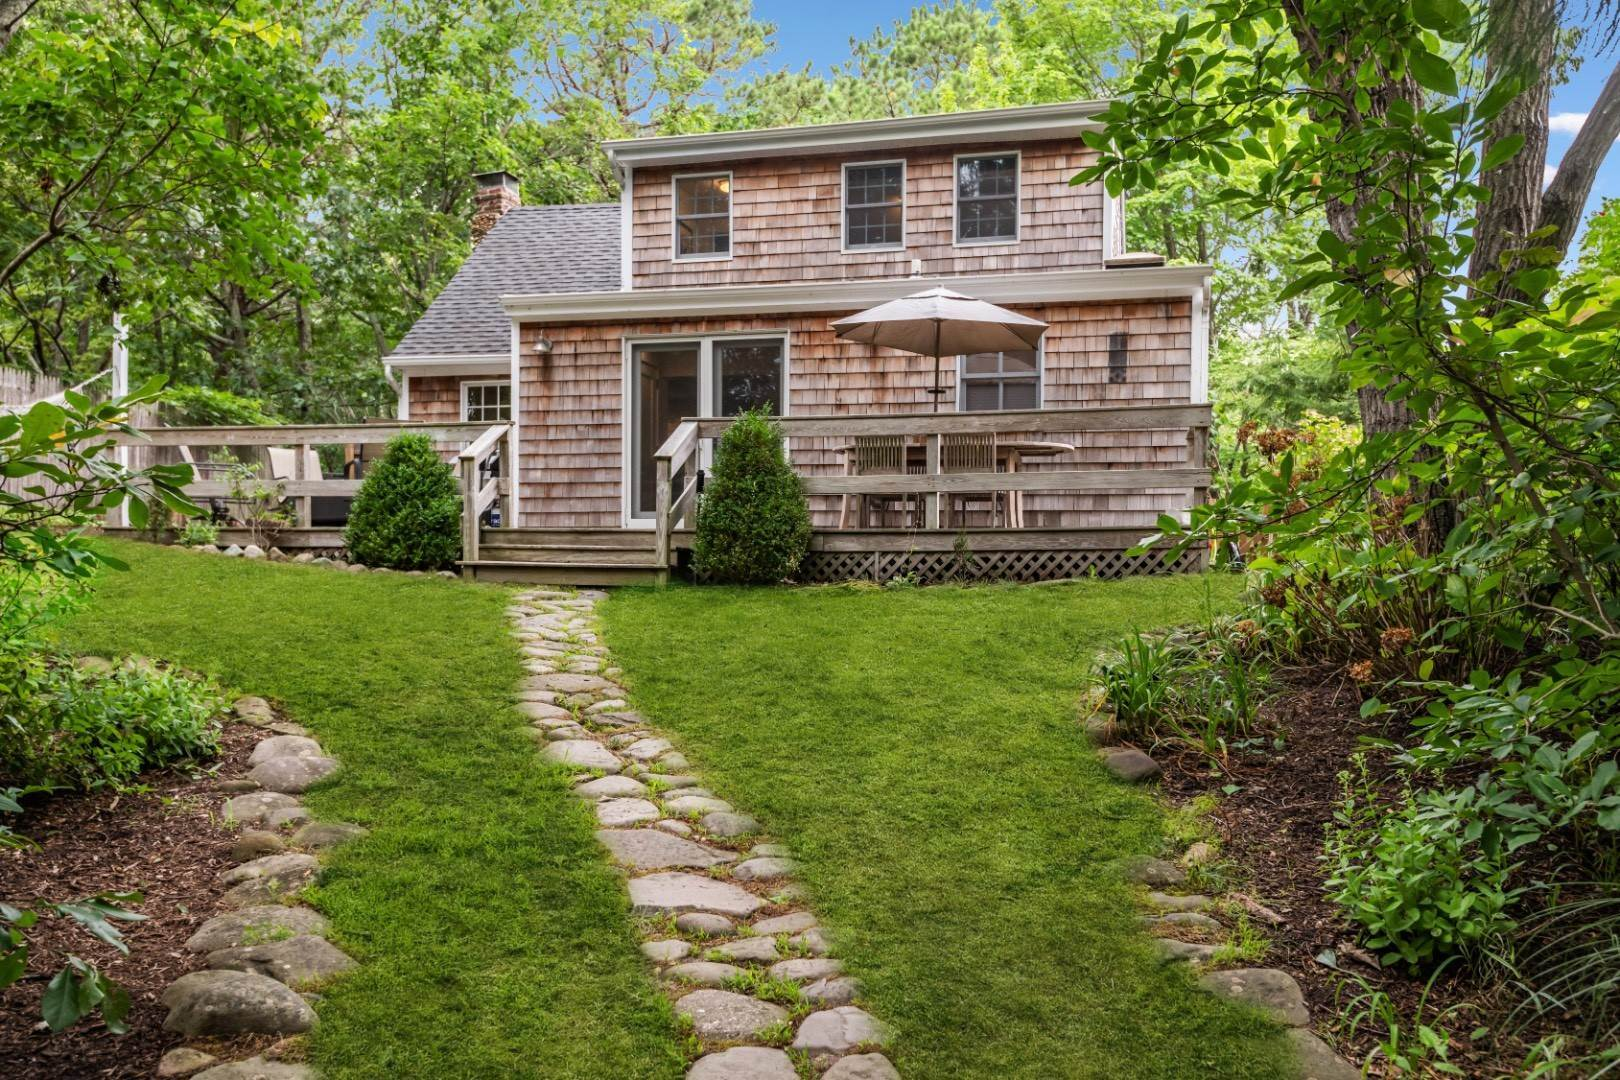 Single Family Home at Sag Harbor Mini Compound W/ Main House & Cottage By Long Beach. 49 Wickatuck Drive, Sag Harbor, NY 11963